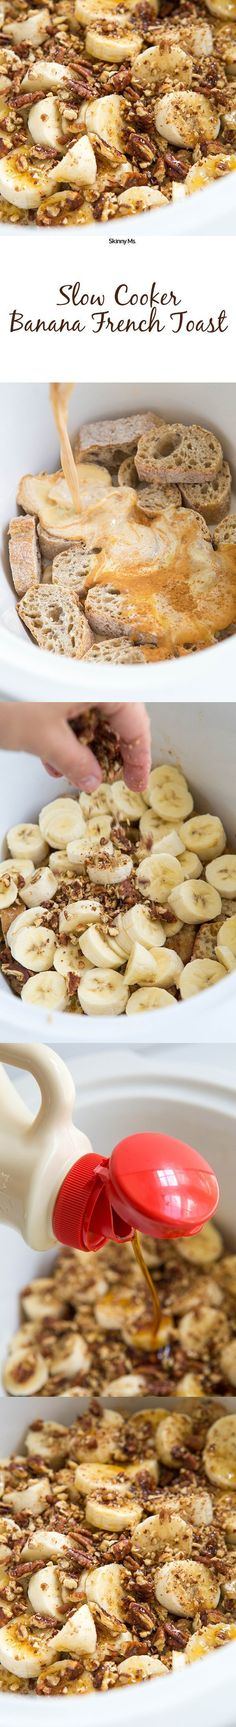 Slow Cooker Banana F